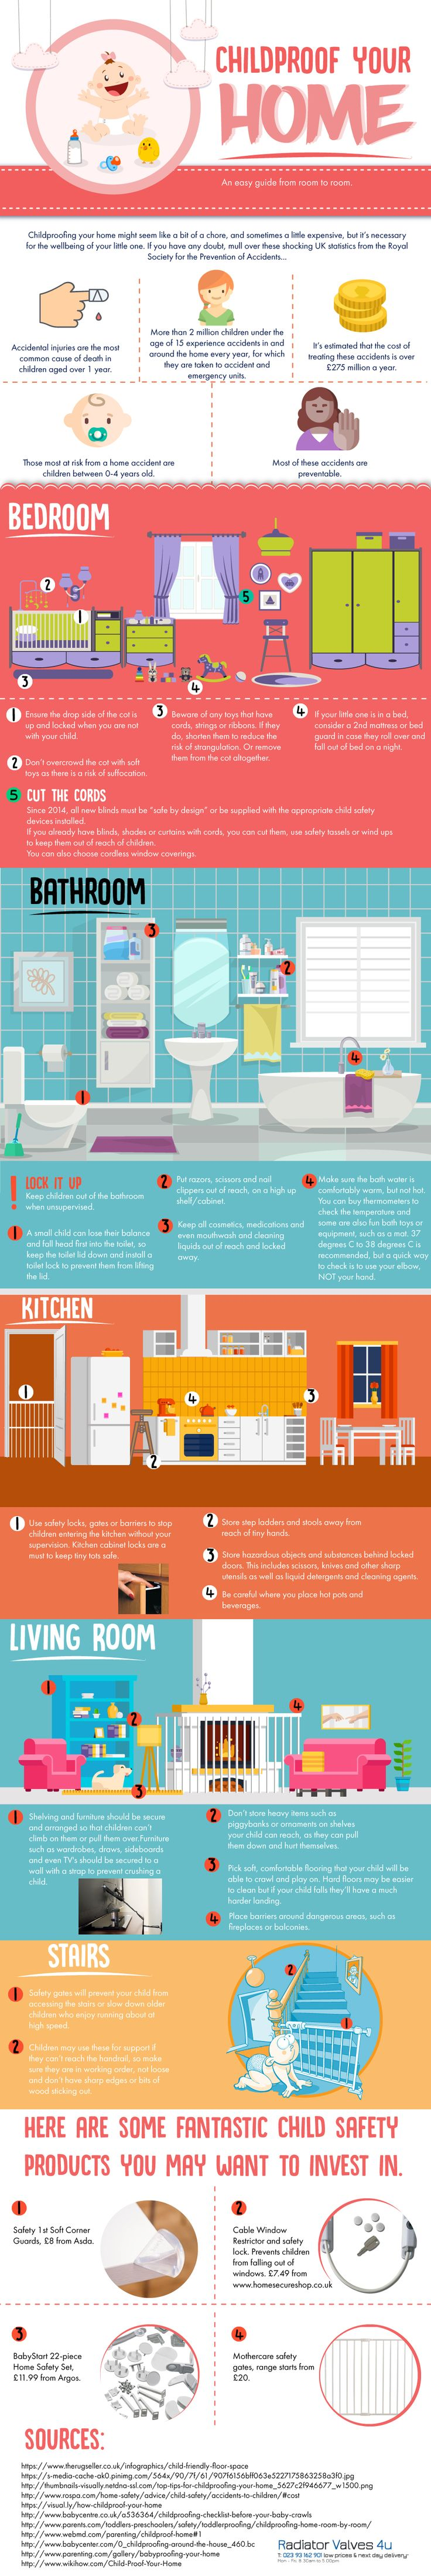 Childproofing Your Home #Infographic #ChildProofing #Home